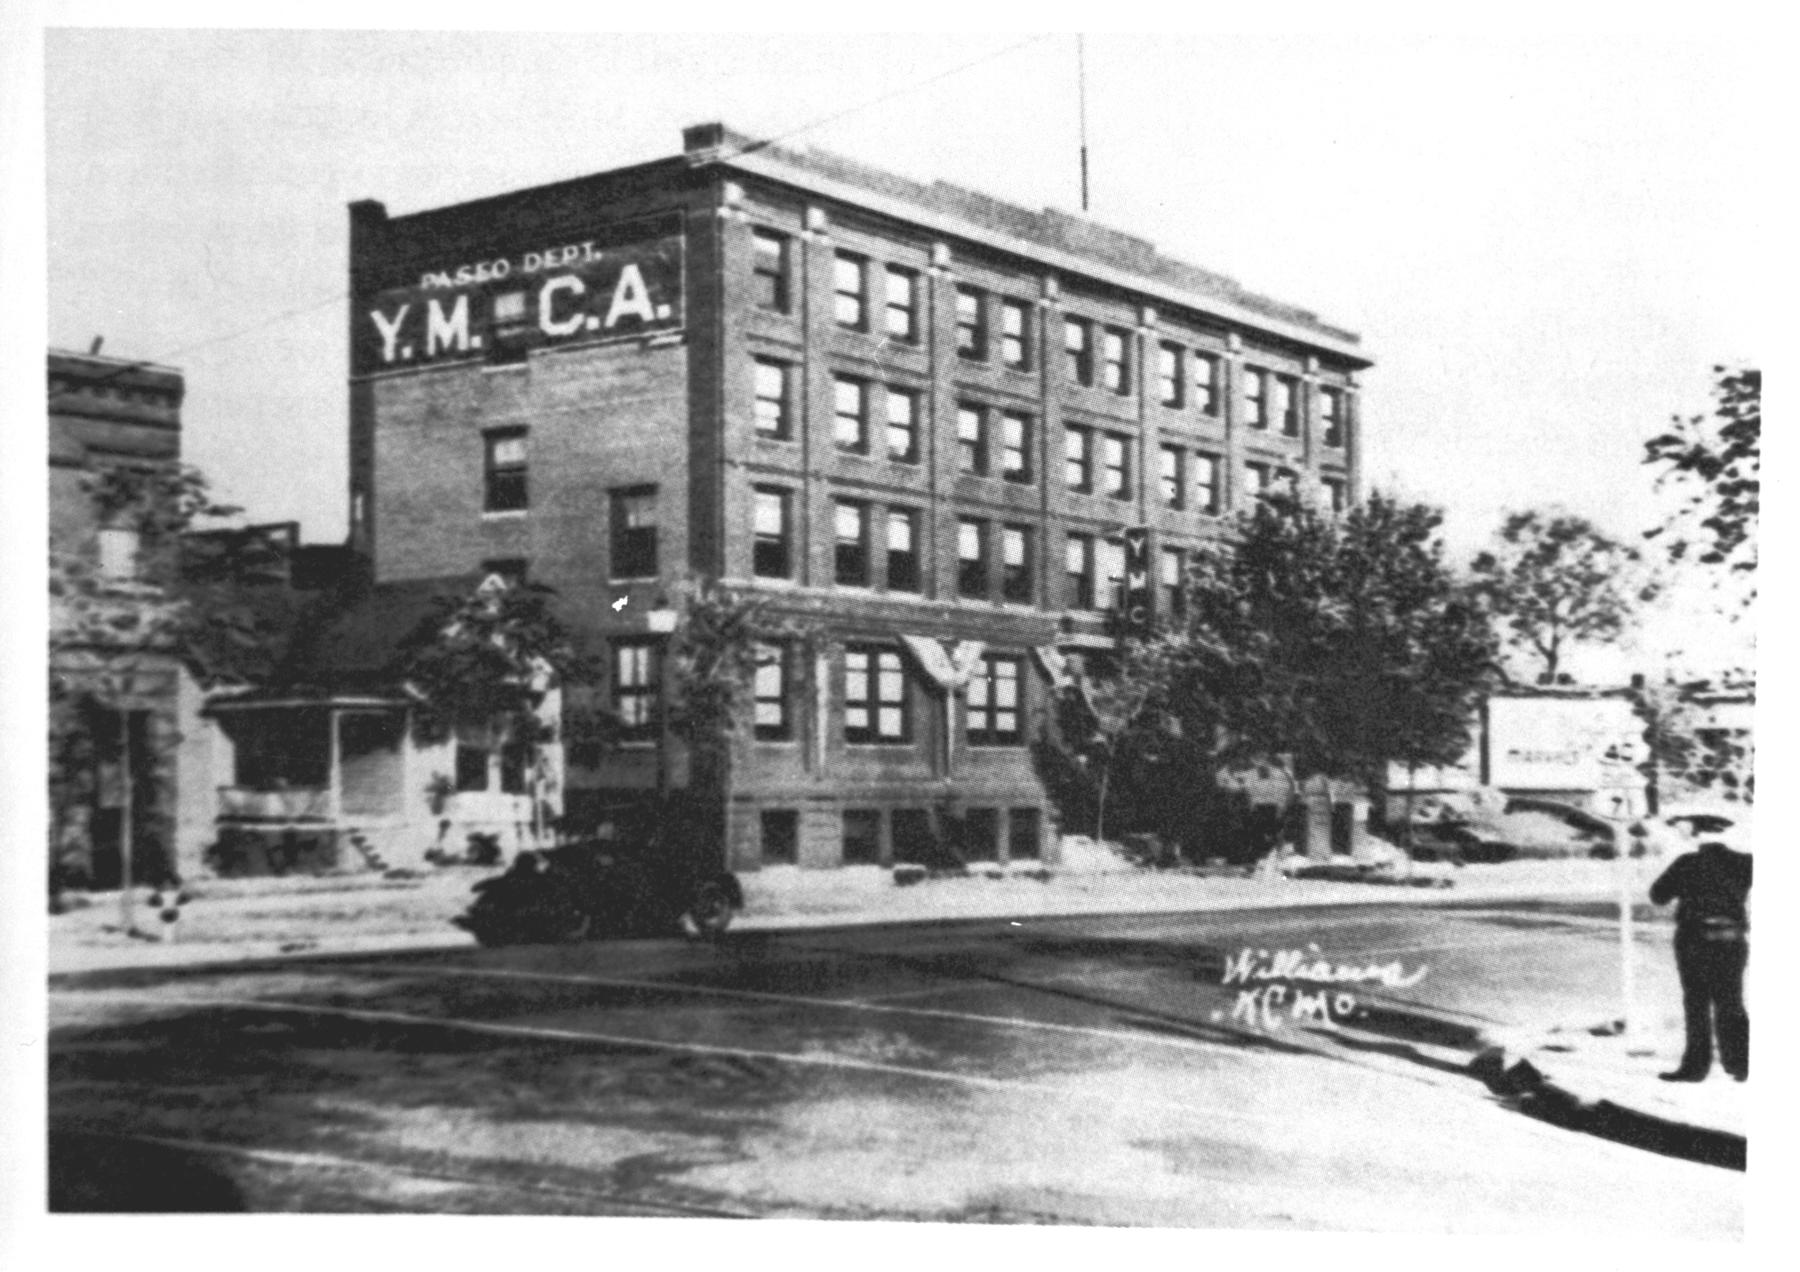 The YMCA in Kansas City, Missouri where the Negro National League was established in 1920. BL-103.2008.16 (Larry Hogan / National Baseball Hall of Fame Library)